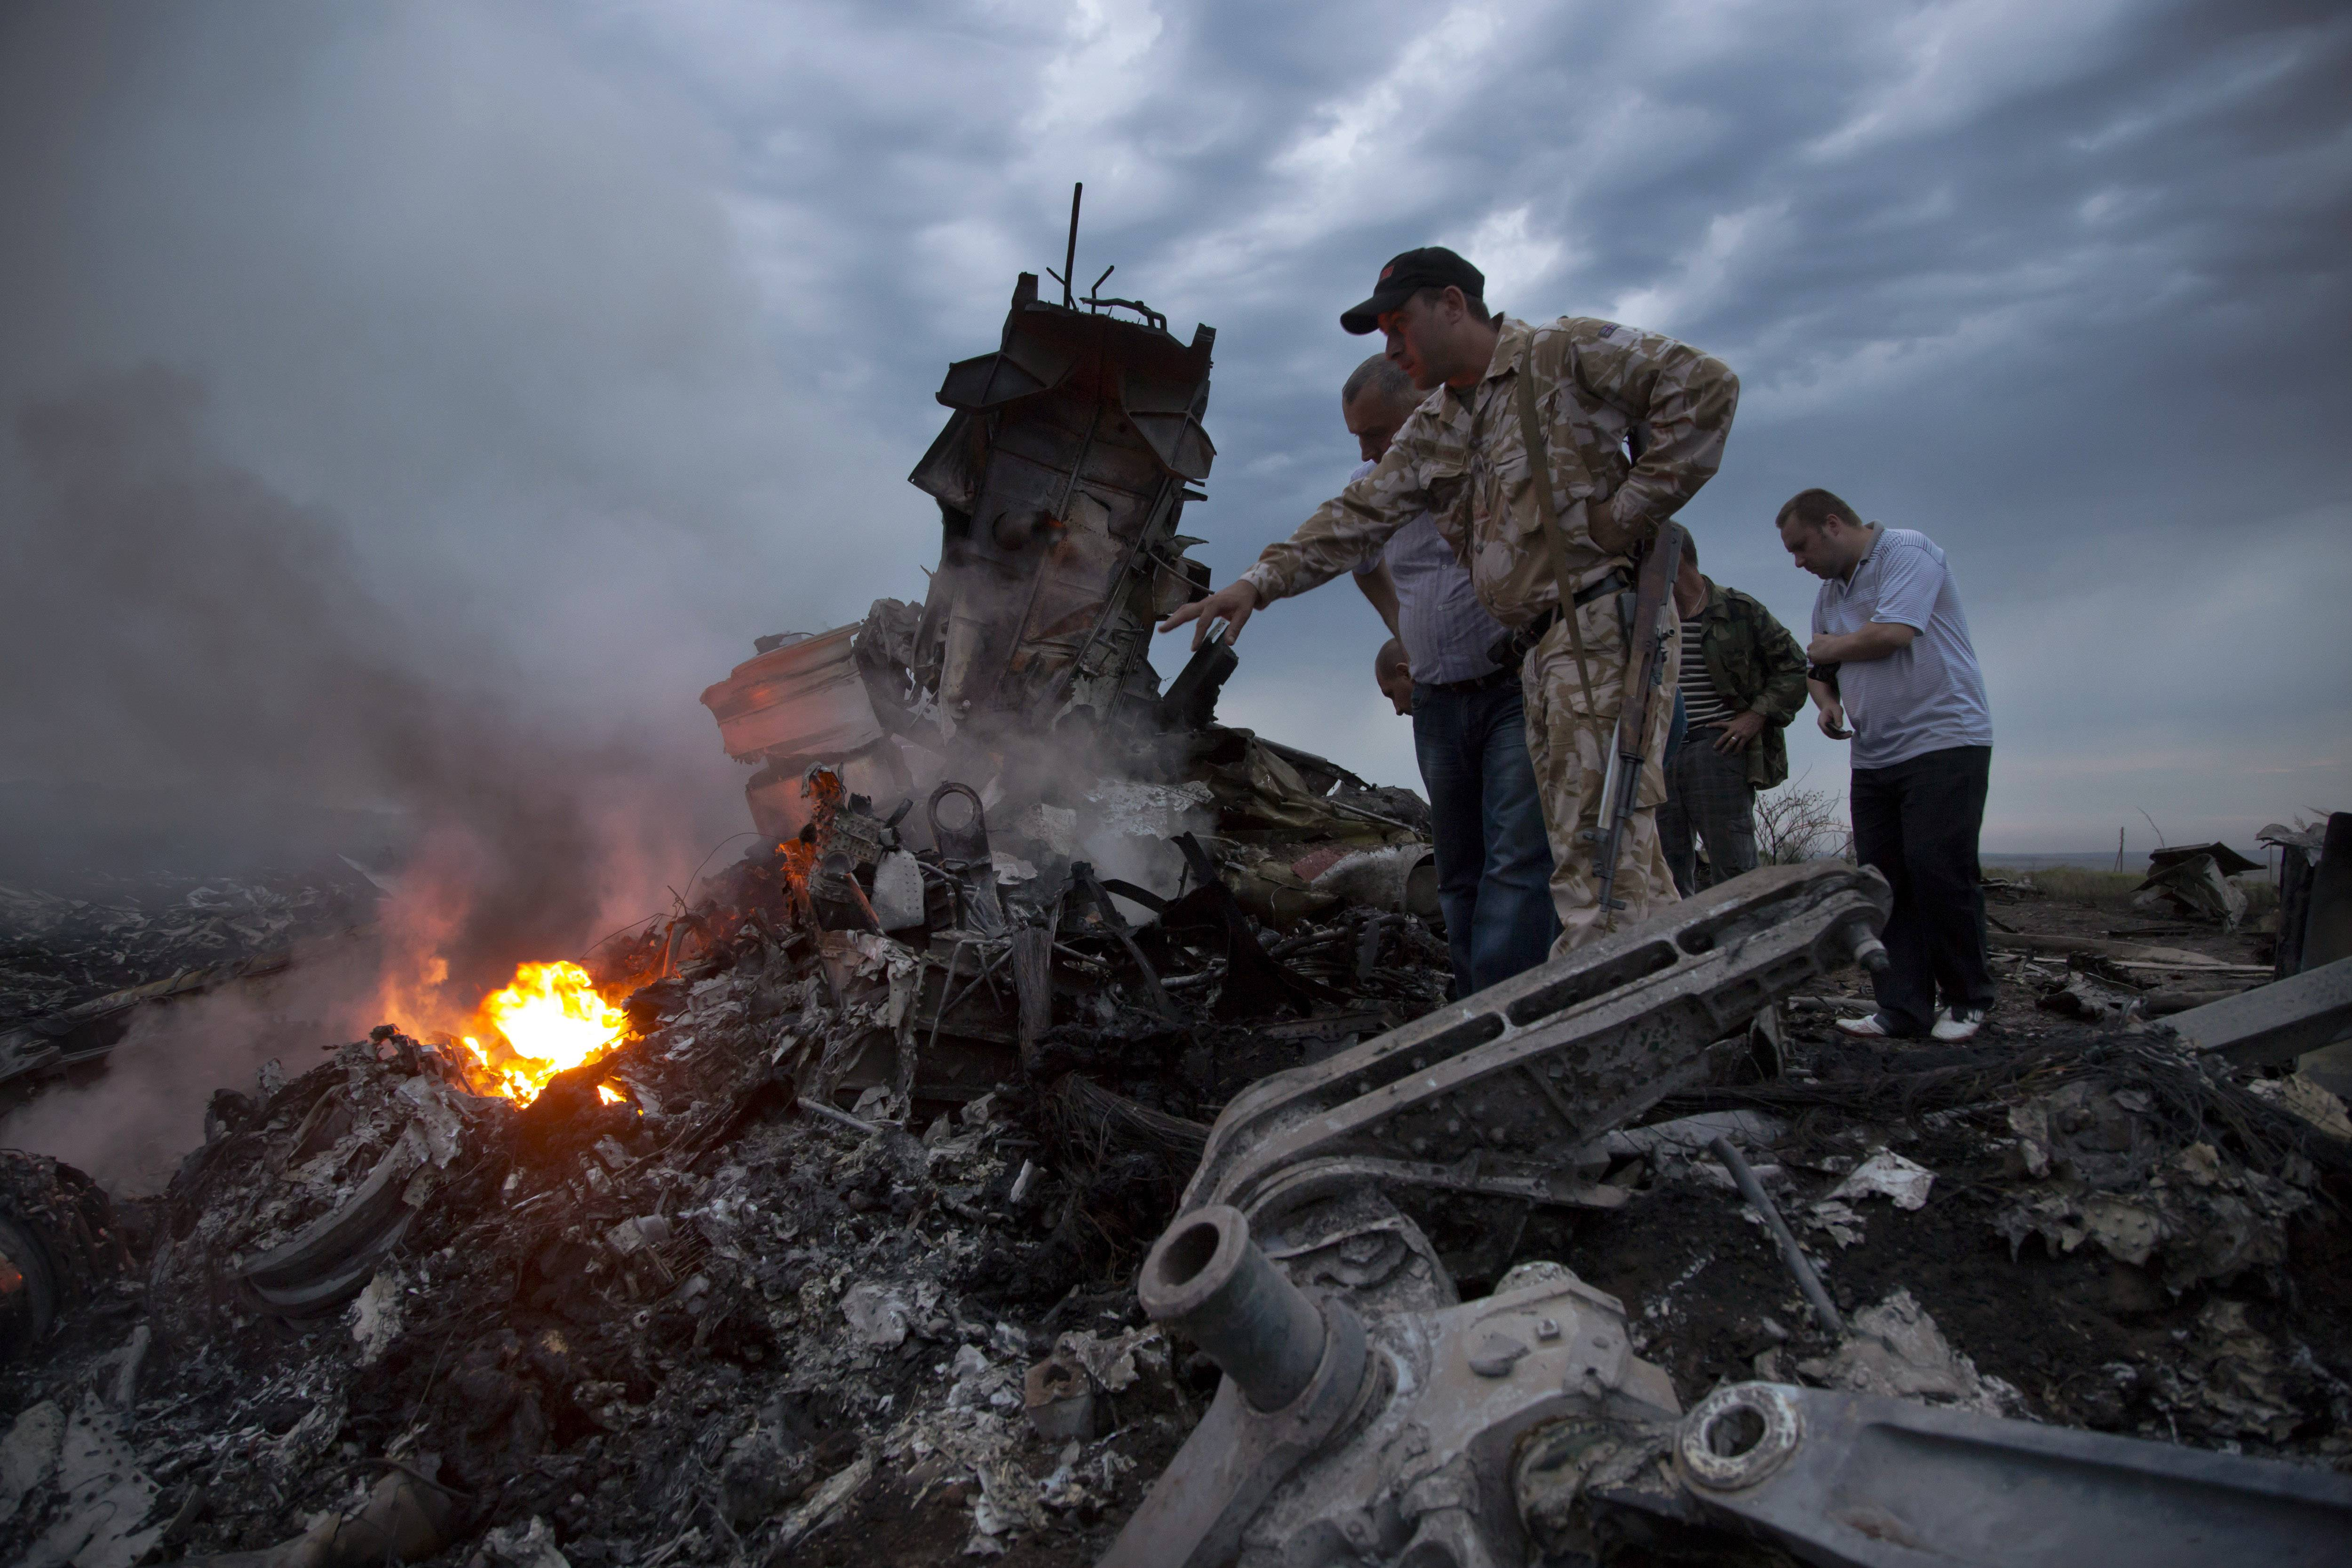 People inspect the crash site of a passenger plane near the village of Hrabove, Ukraine, Thursday. Ukraine said a passenger plane carrying 295 people was shot down Thursday as it flew over the country, and both the government and the pro-Russia separatists fighting in the region denied any responsibility for downing the plane.